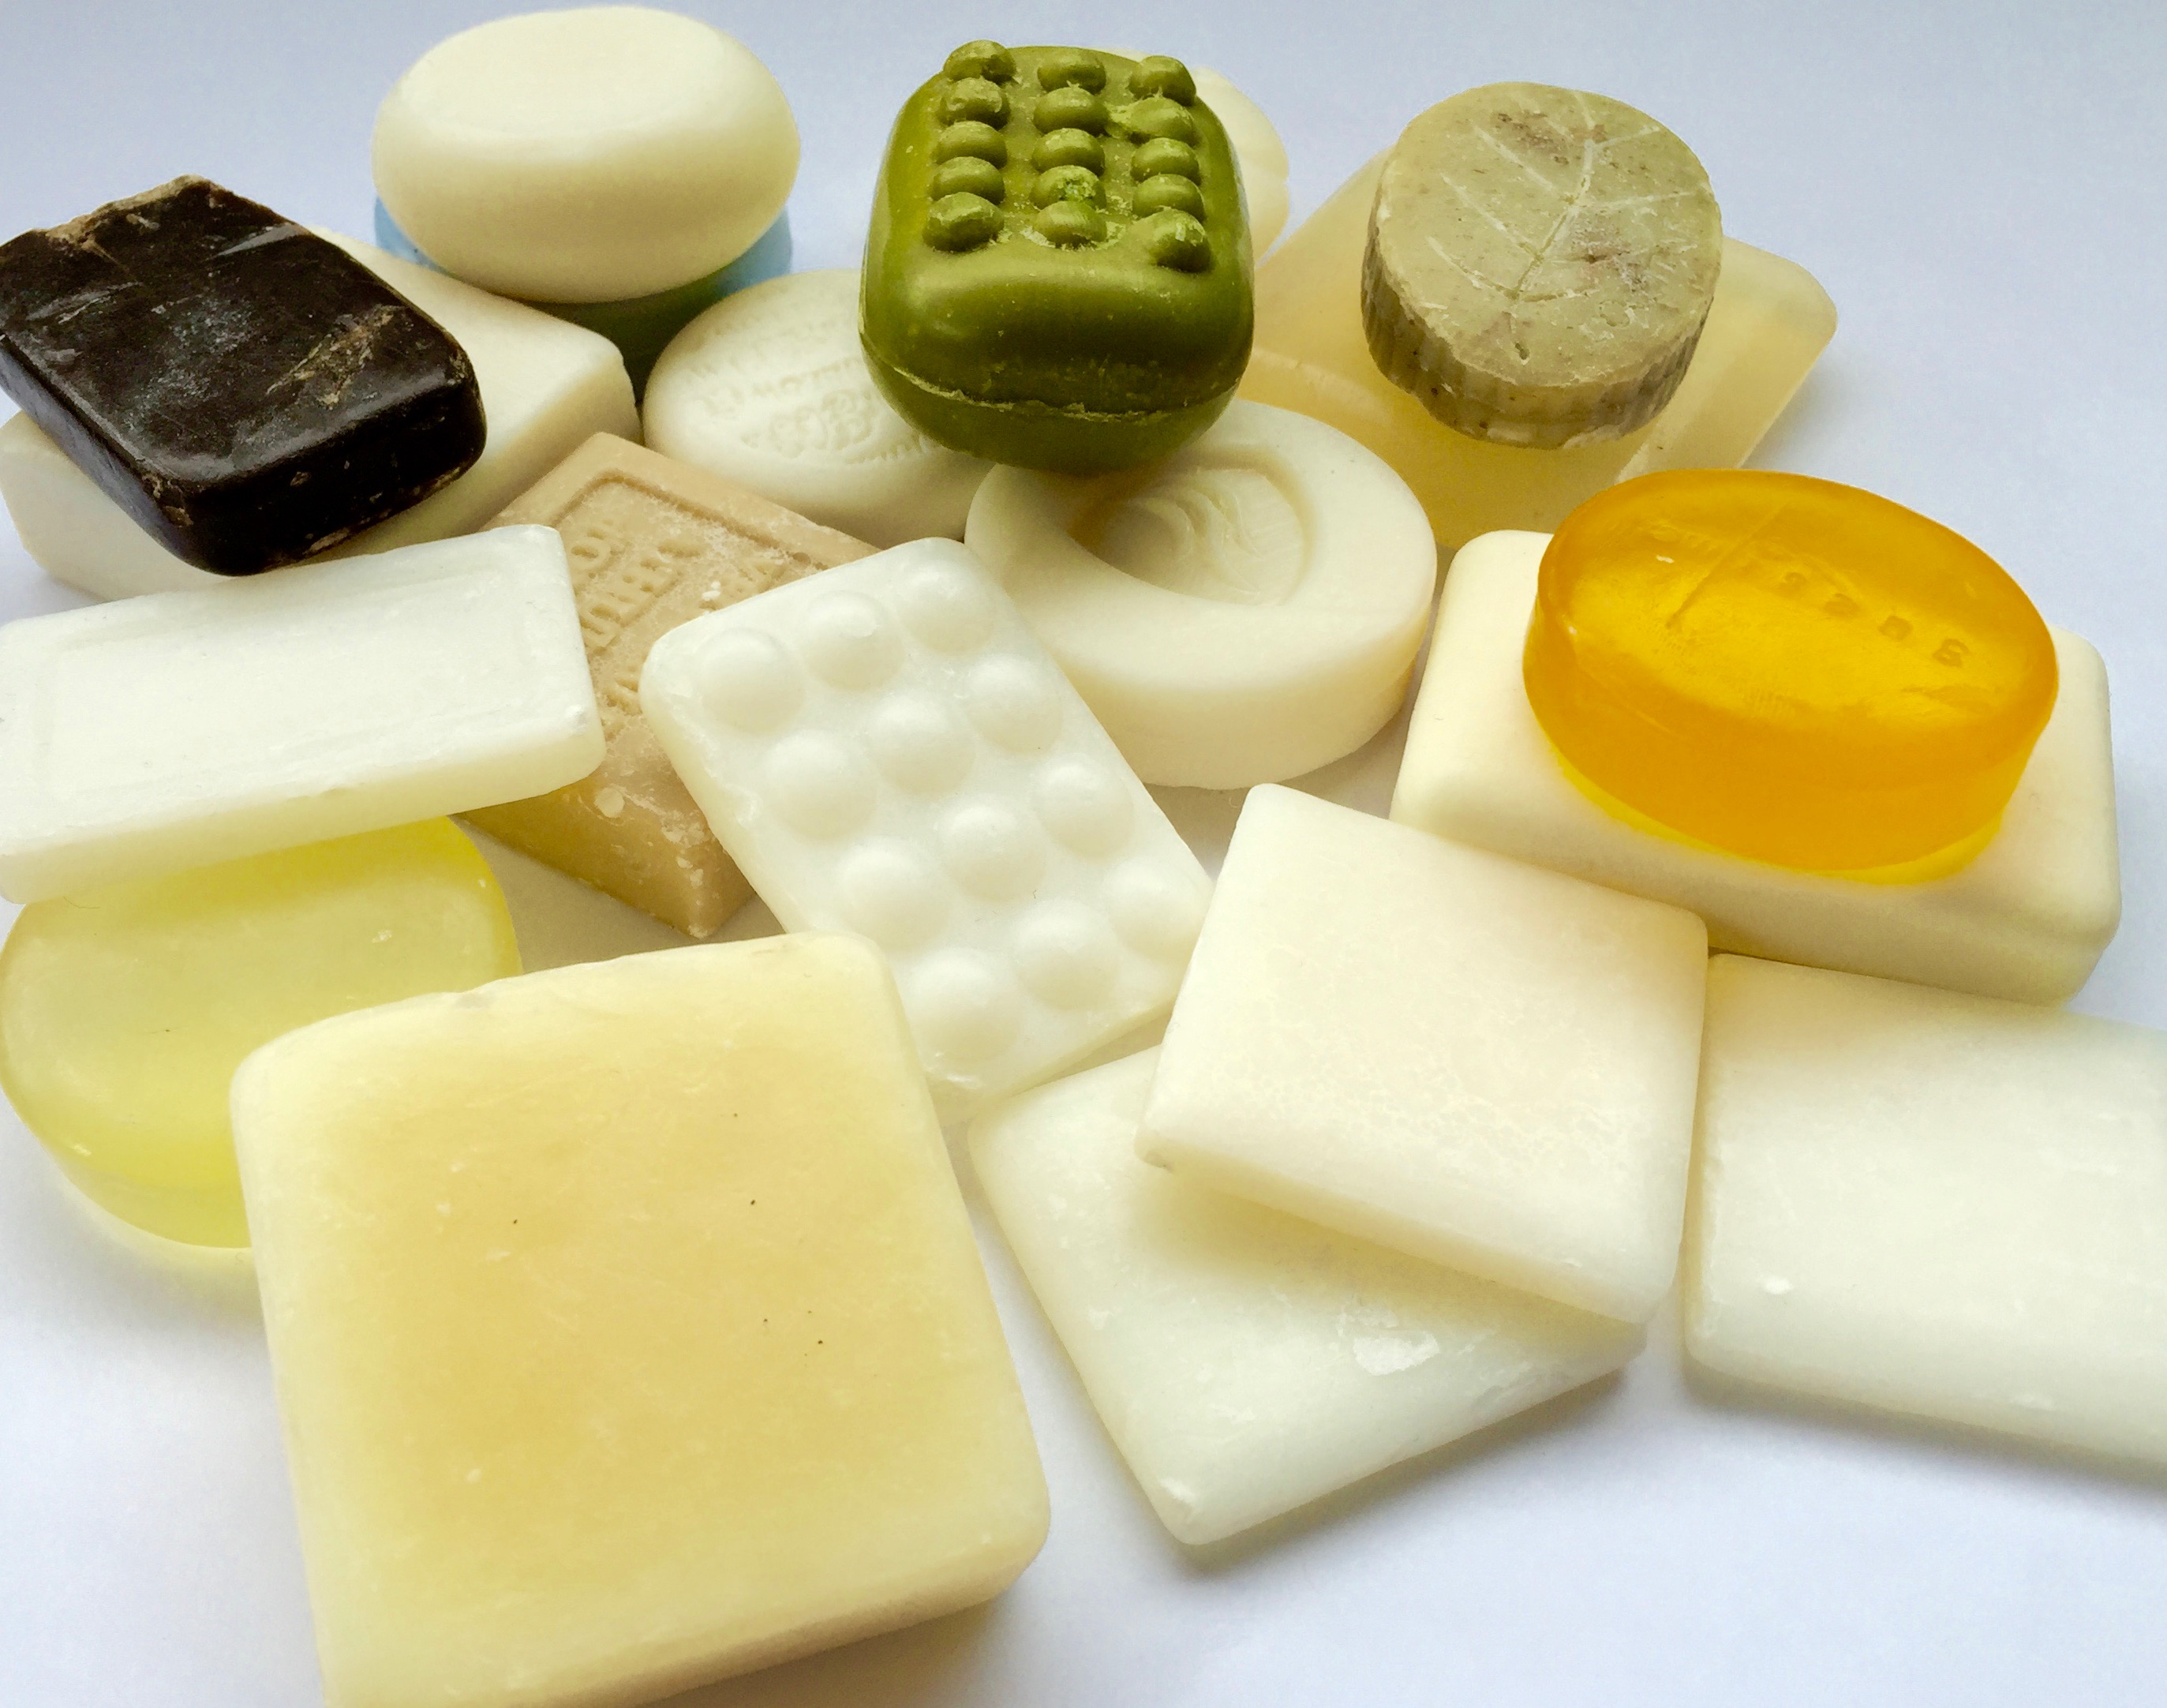 Every year, around 150 tonnes of used hotel soaps are discarded in Switzerland.